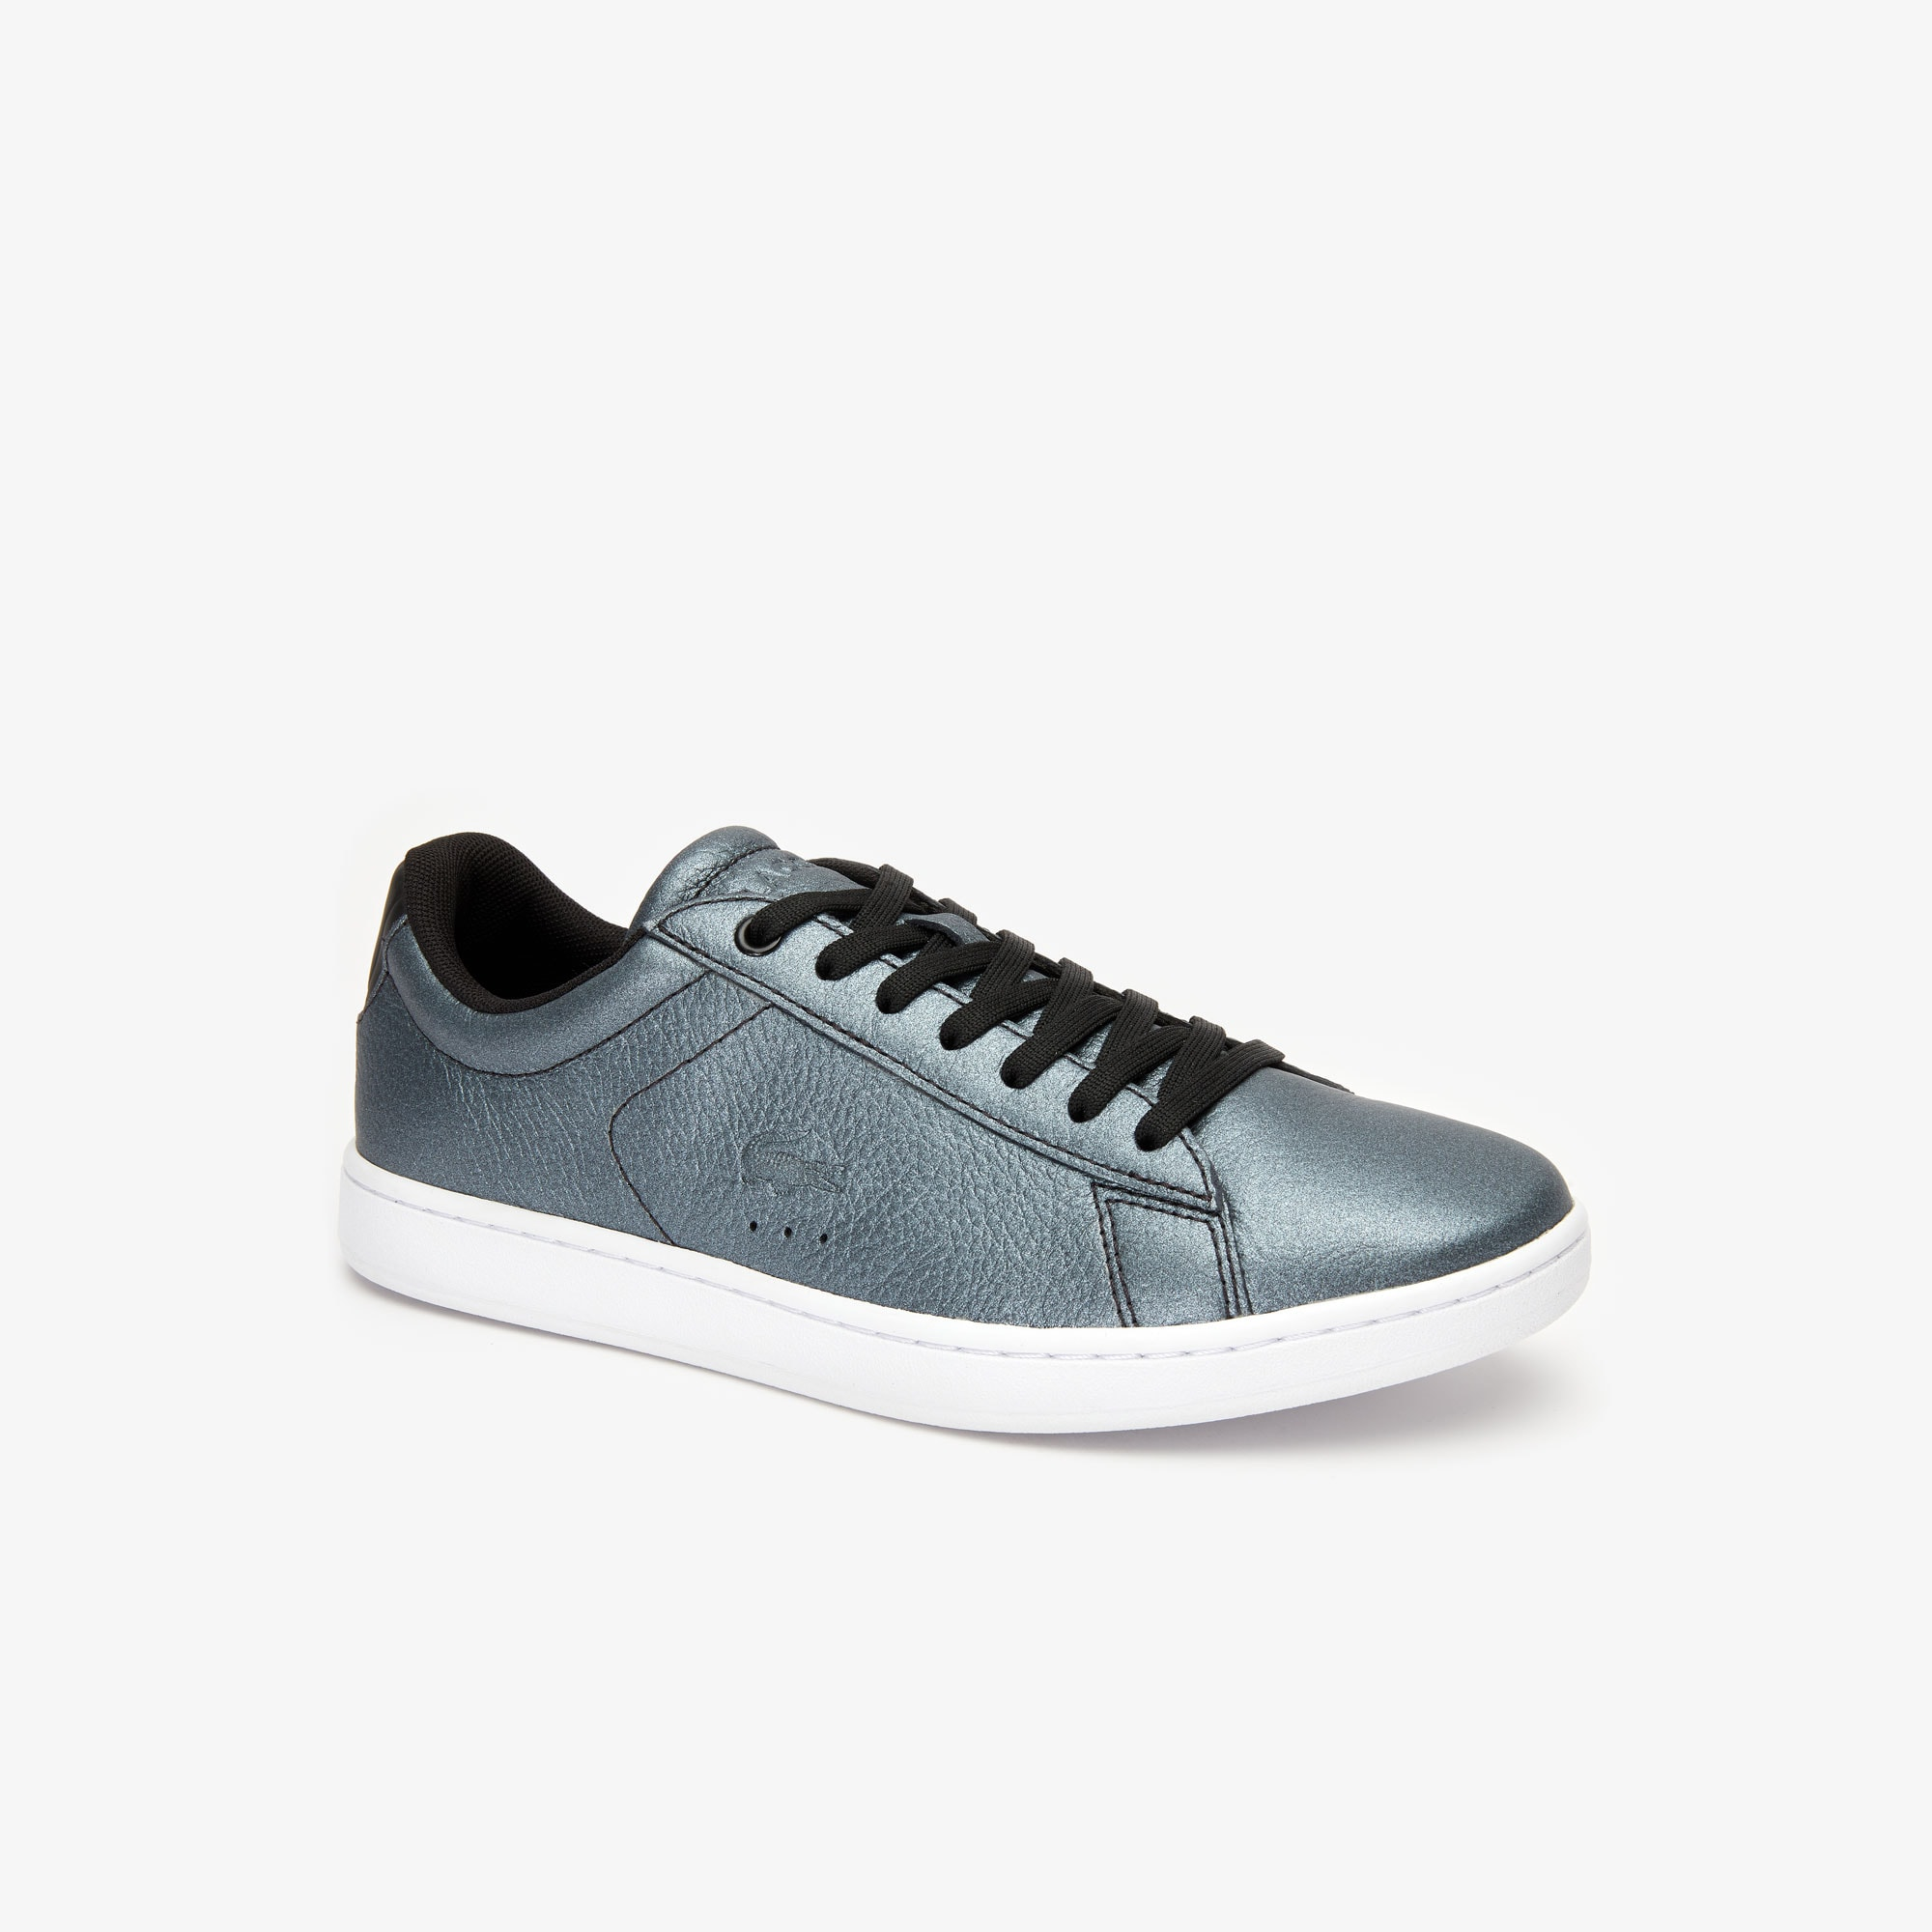 Lacoste Women's Carnaby Evo Iridescent Leather Sneakers